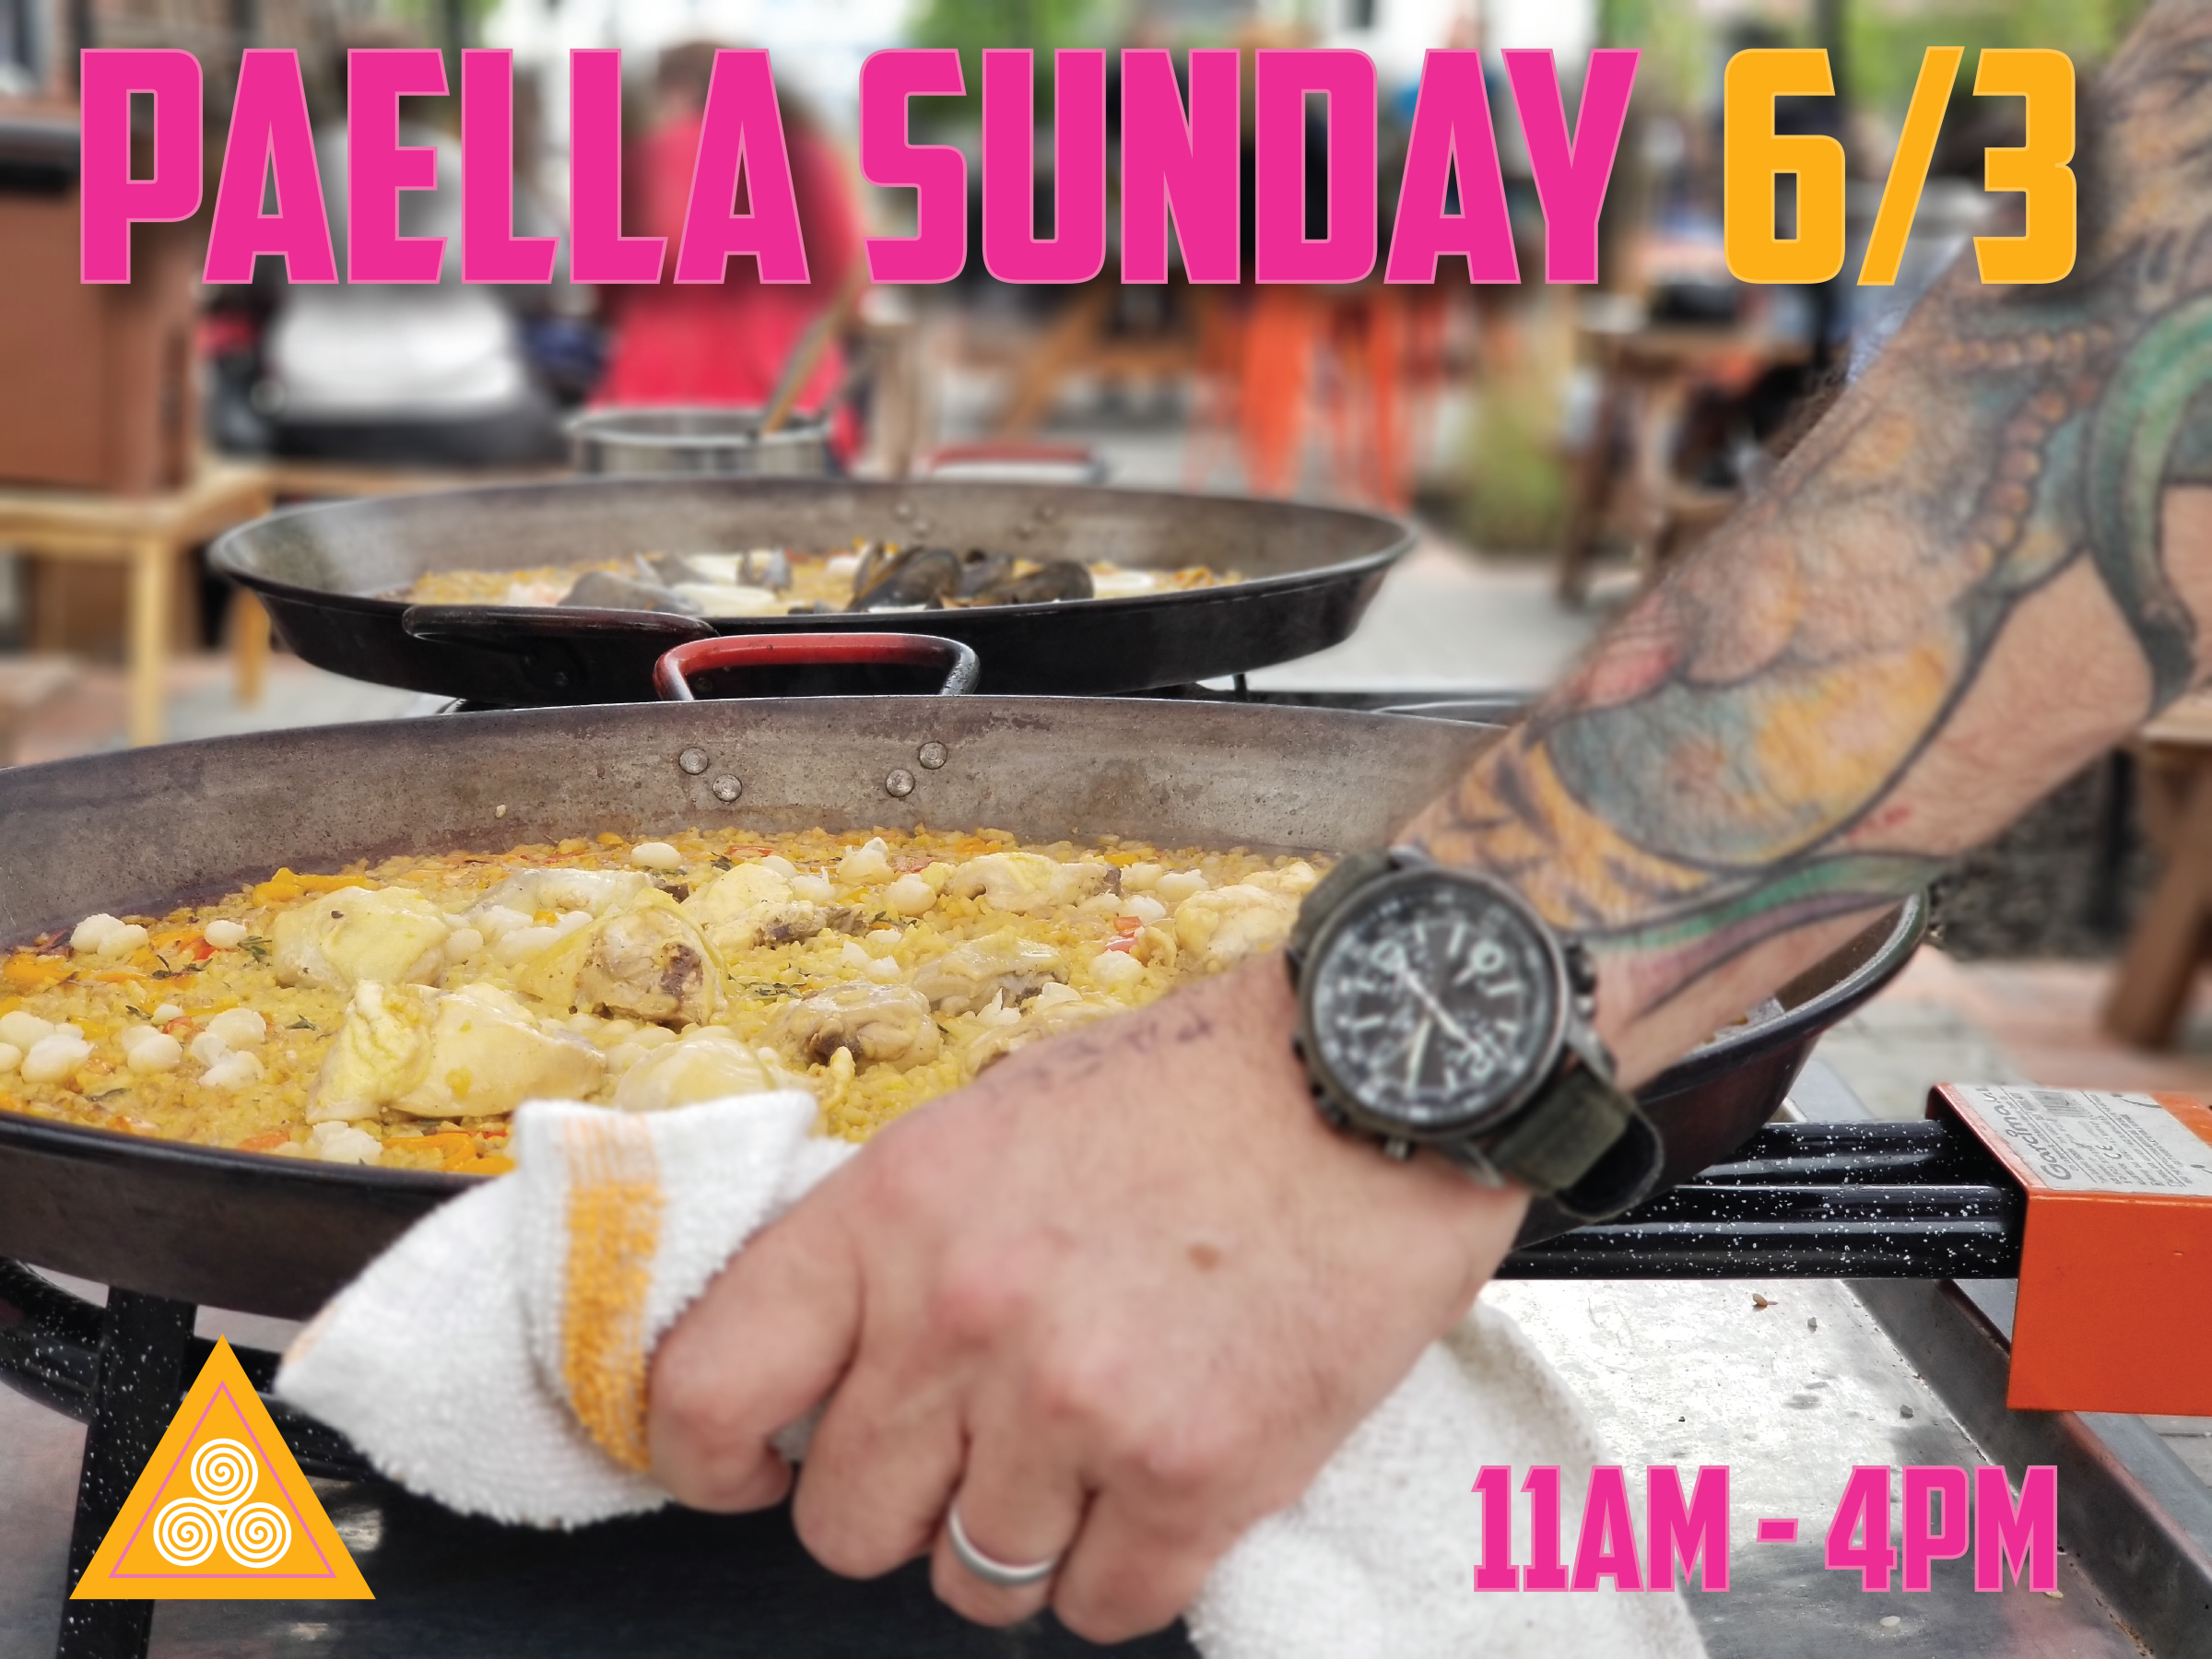 Chef Alex is at it again on Sunday June 3rd making his famous Paella de Mariscos on the patio from 11am-4pm.